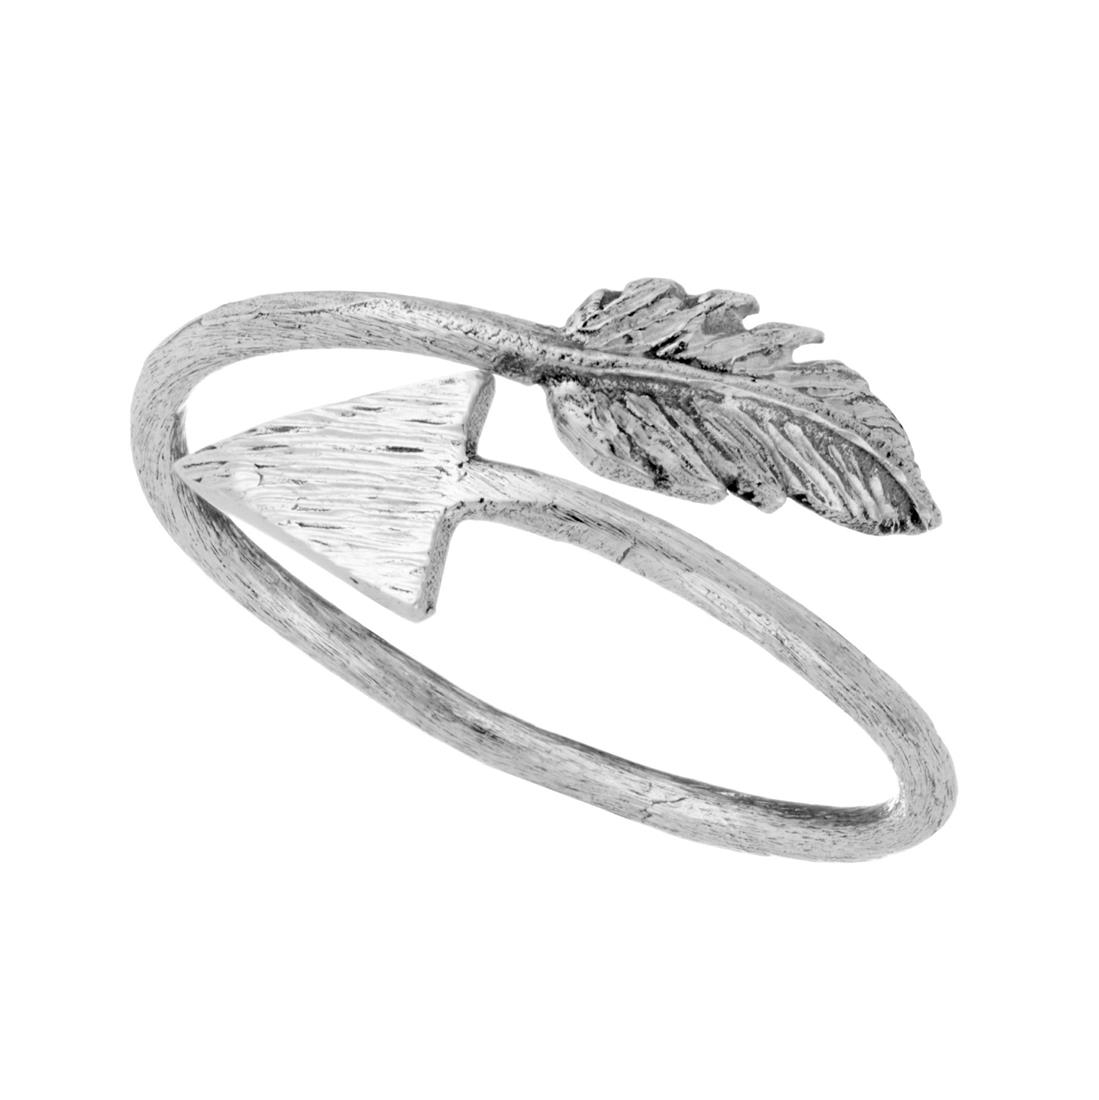 Satin Silver Arrow Wraparound Adjustable Ring For Most Current Wrap Around Arrow Rings (Gallery 4 of 25)